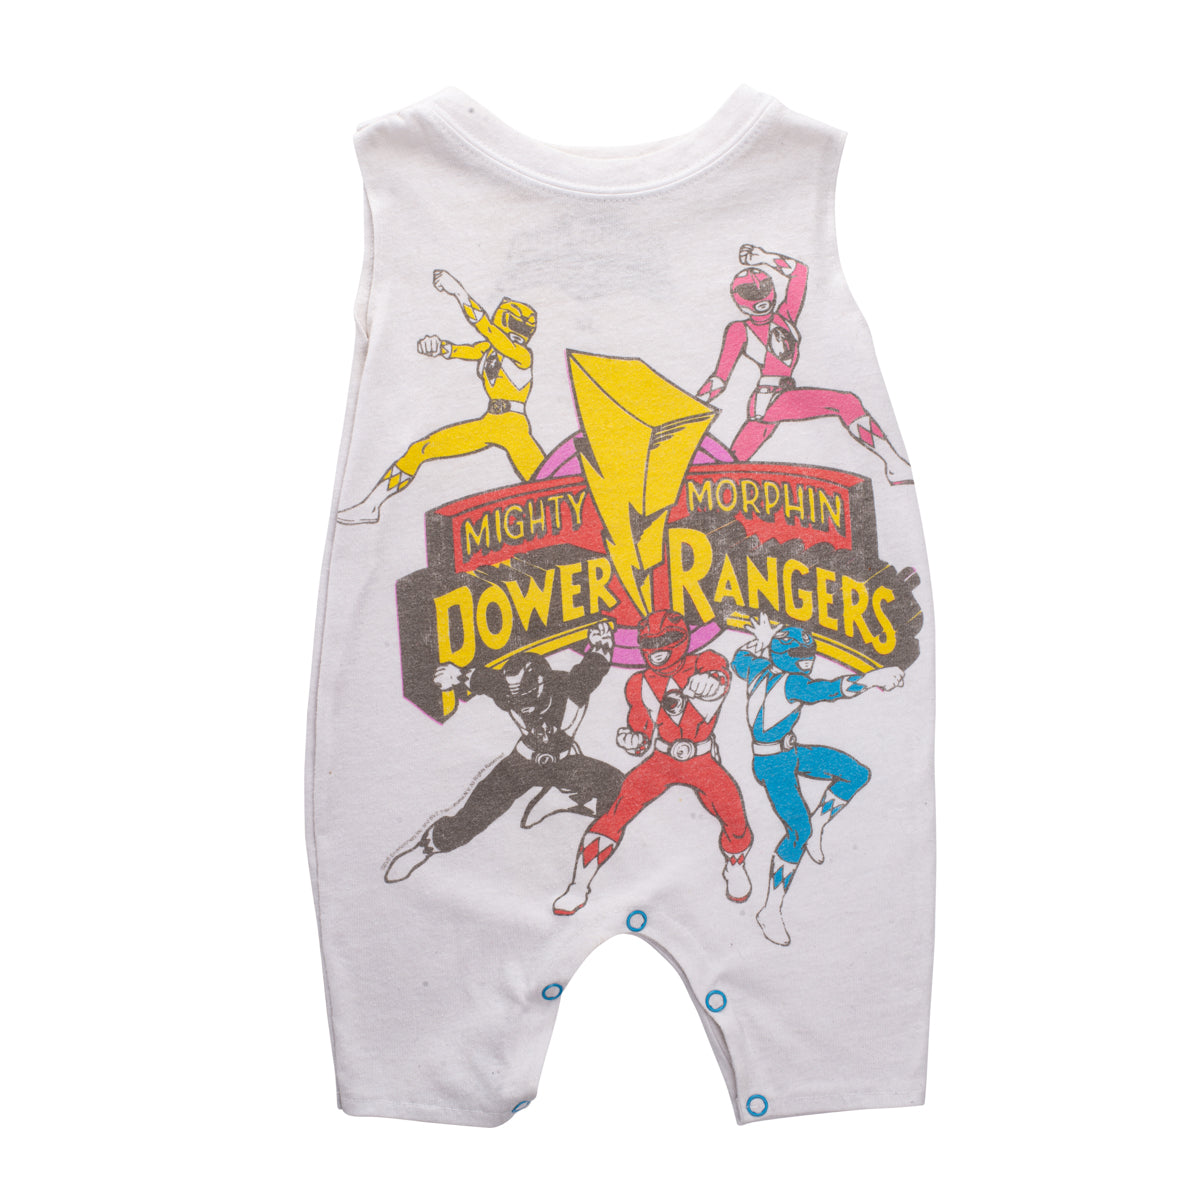 The Mighty Morphin Power Rangers T-Shirt Onesie